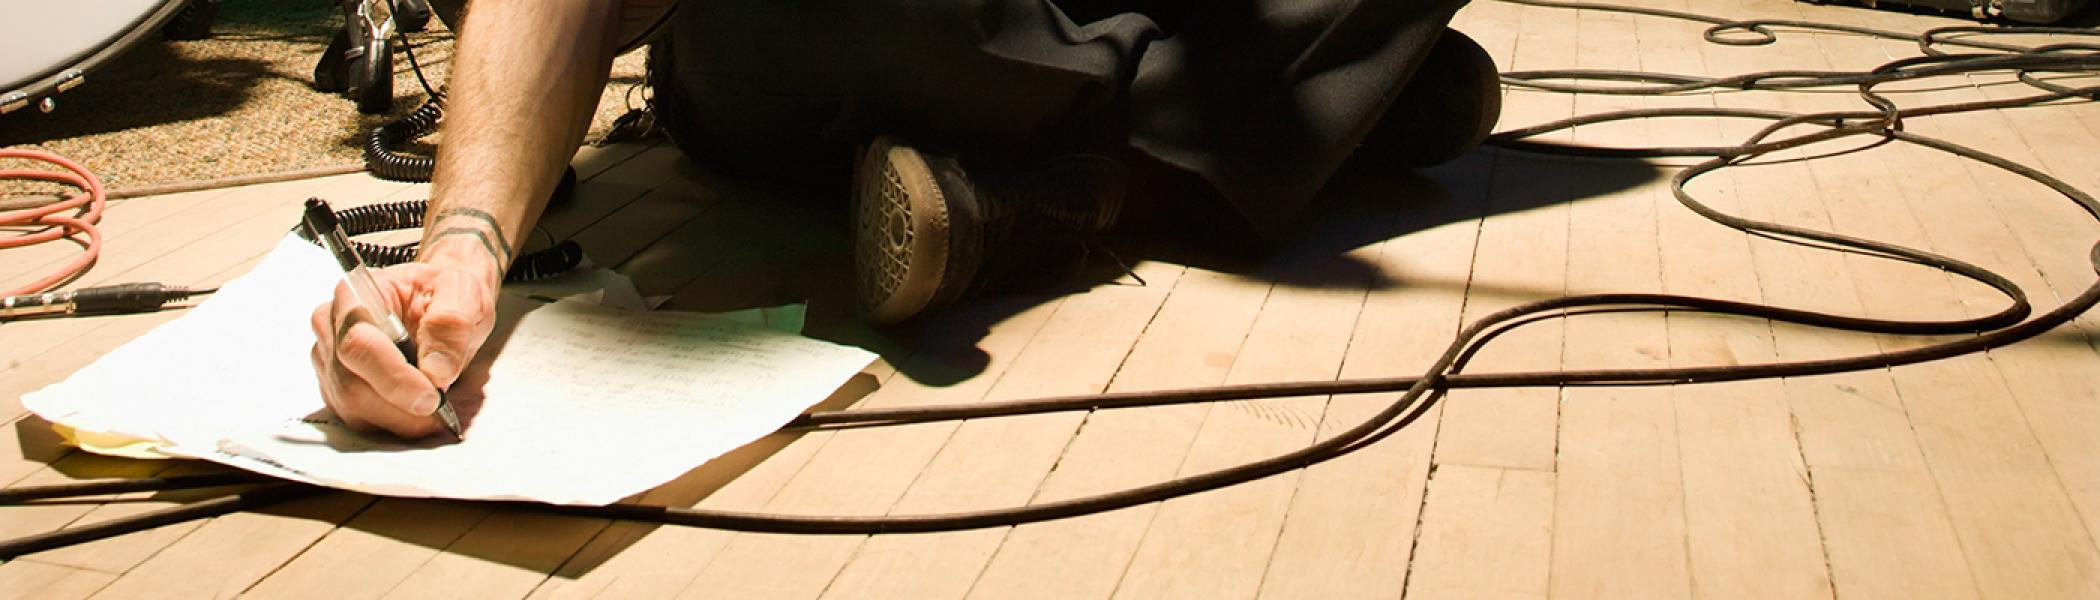 Hand writing on a piece of paper on the floor